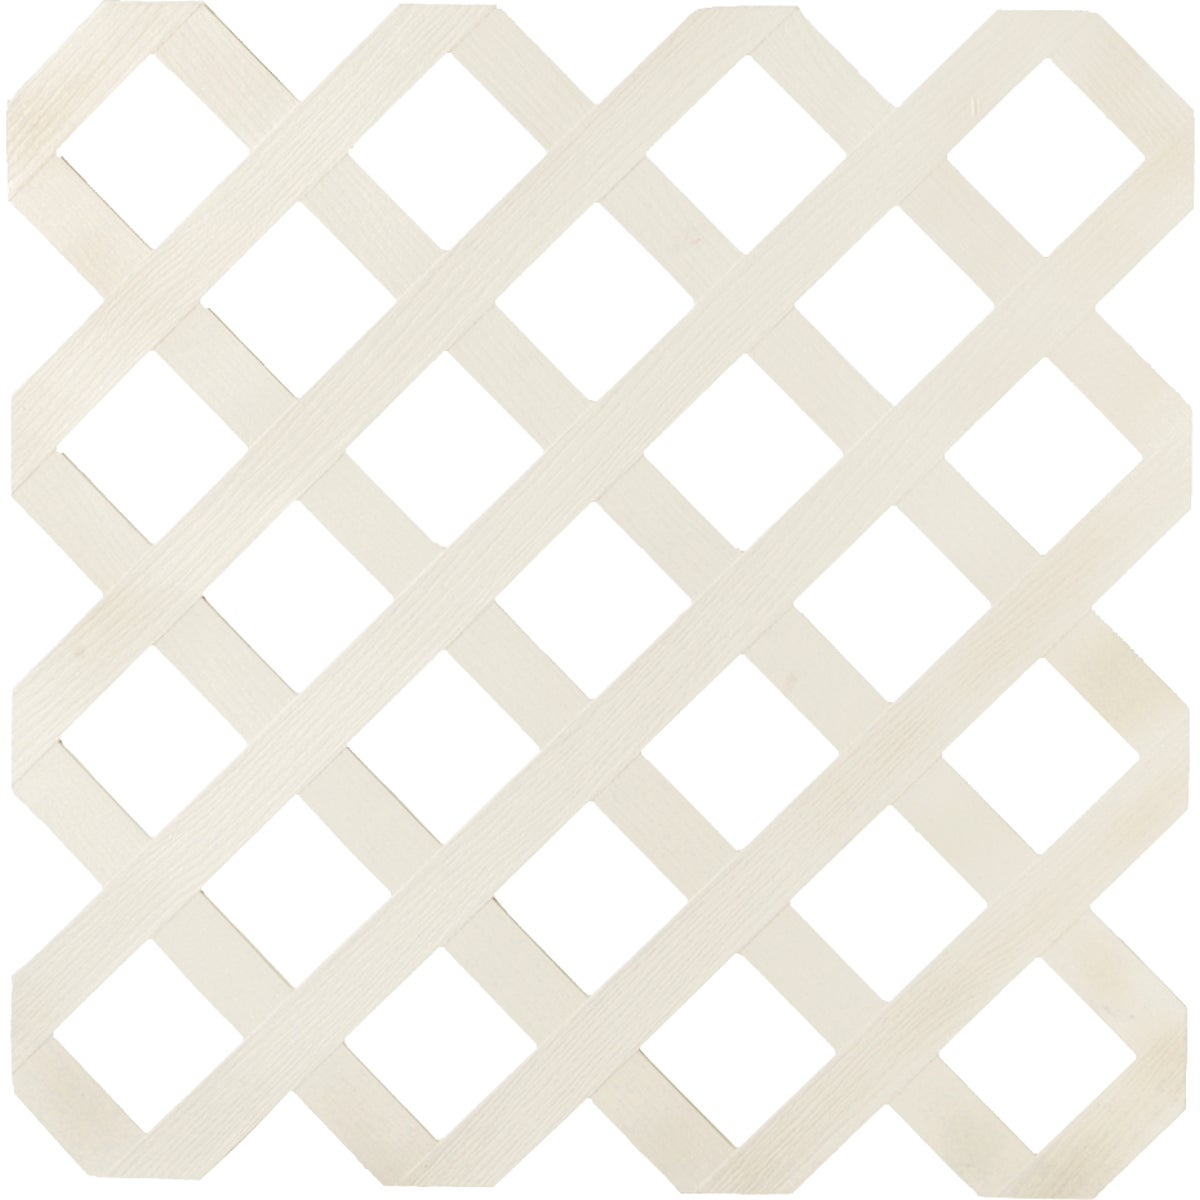 4X8 ALMOND LATTICE